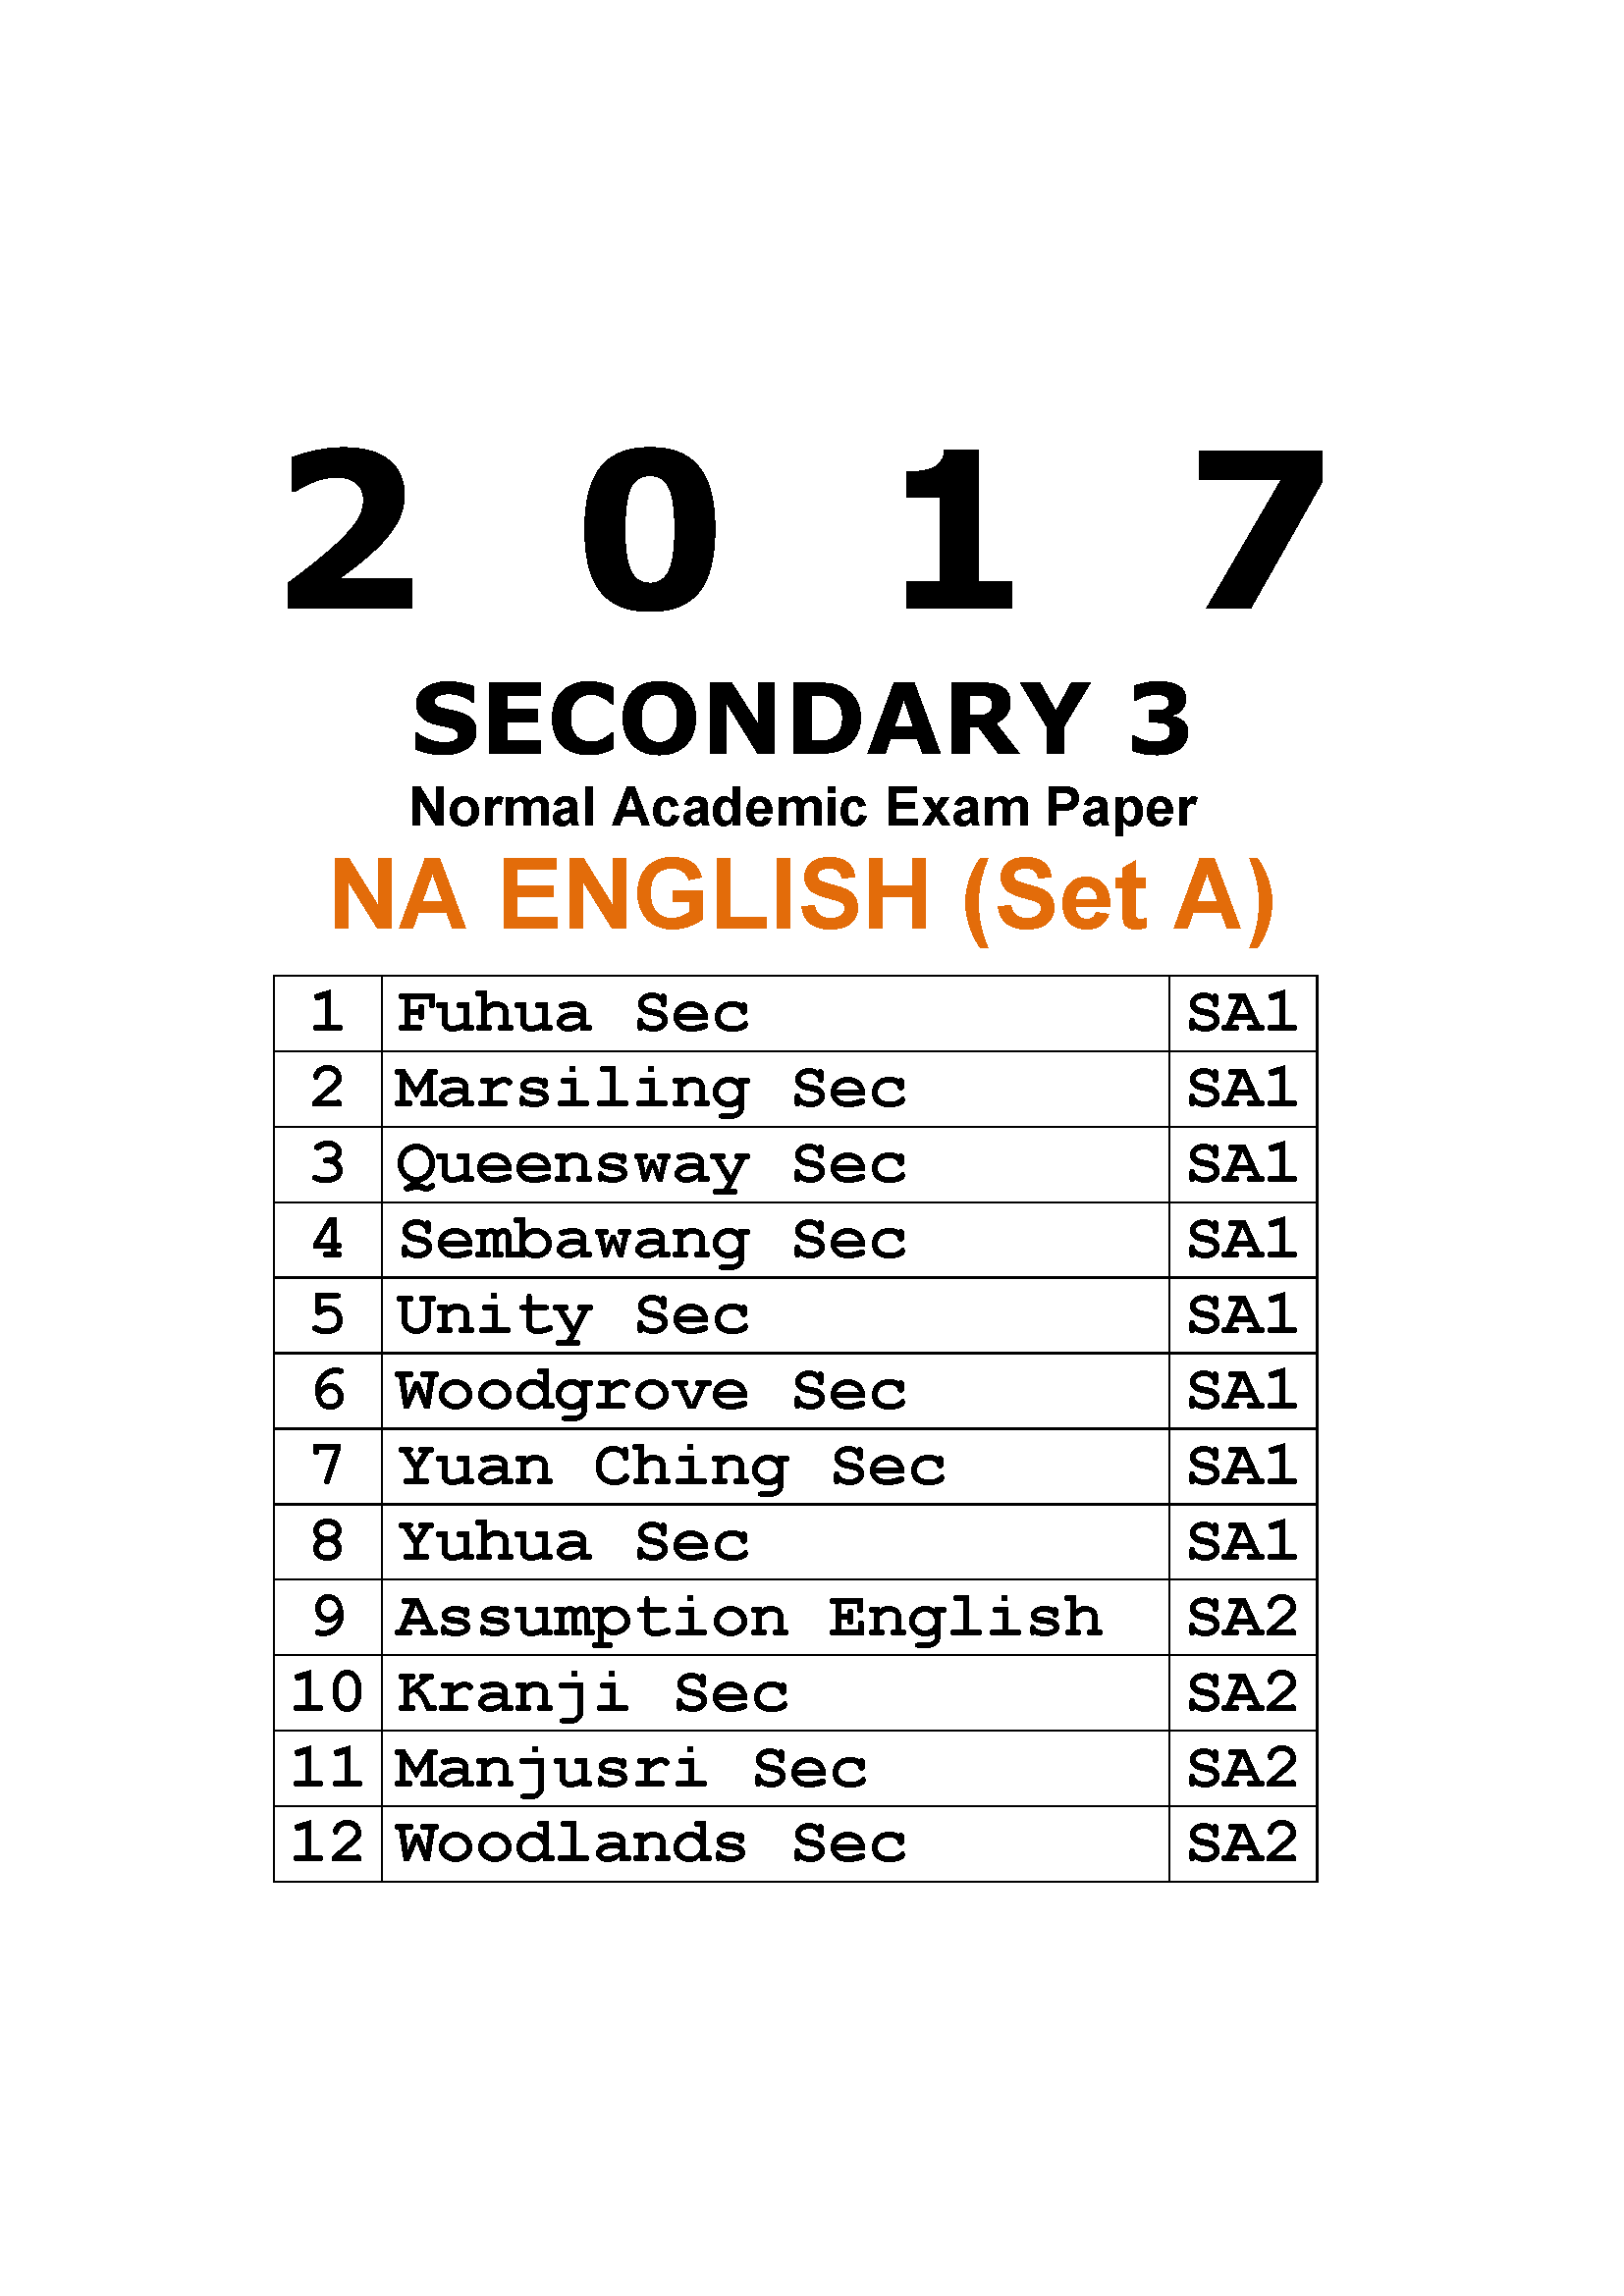 2017 Secondary 3 Normal Academic (NA) English Exam Papers